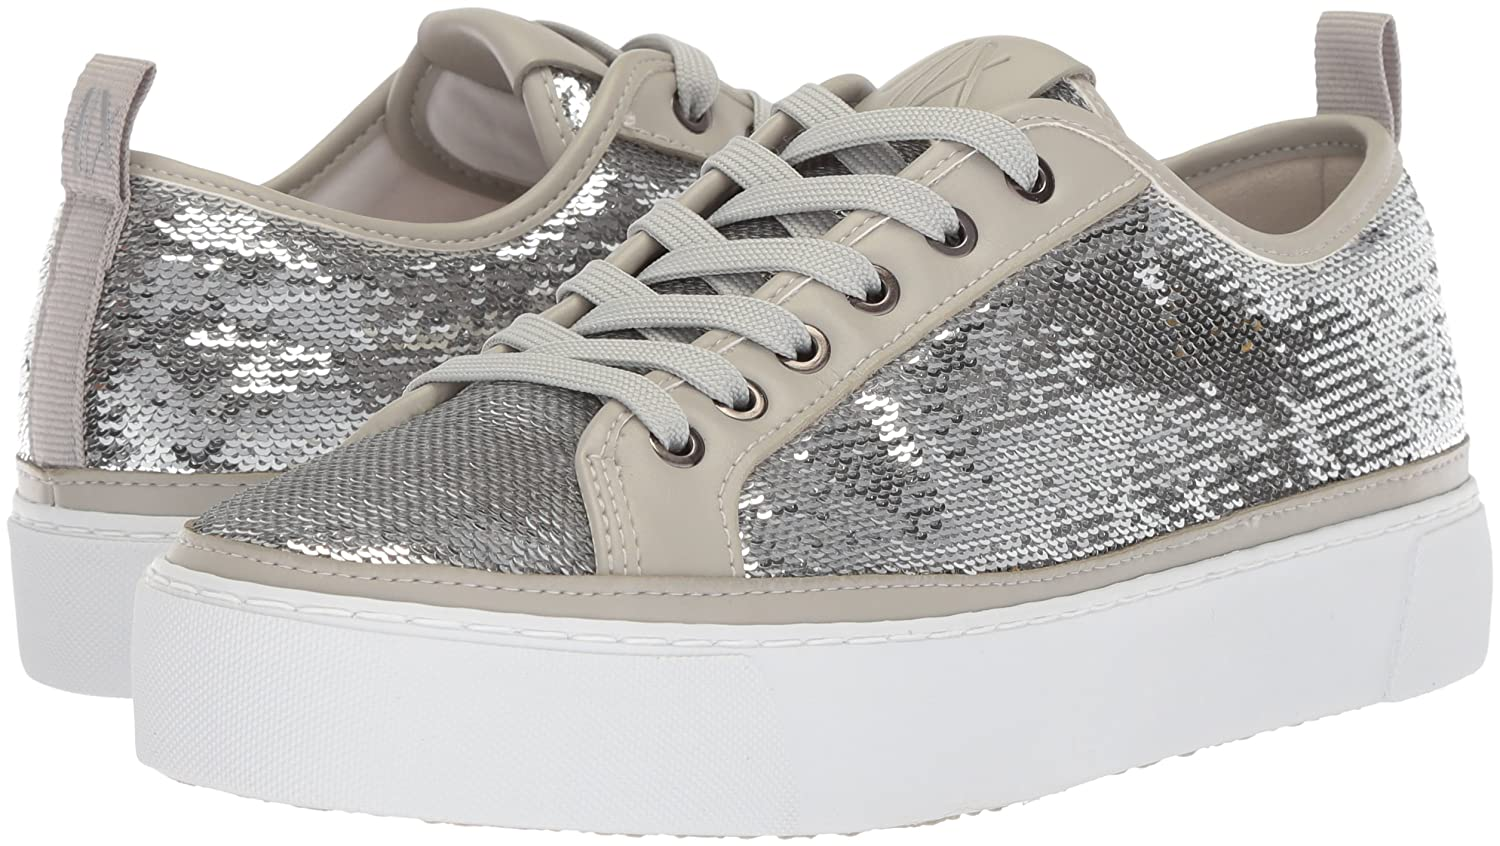 A|X Armani Exchange Women's Sequined Low B(M) Cut Sneaker B0749WFD22 9 B(M) Low US|Antarctica c75af2